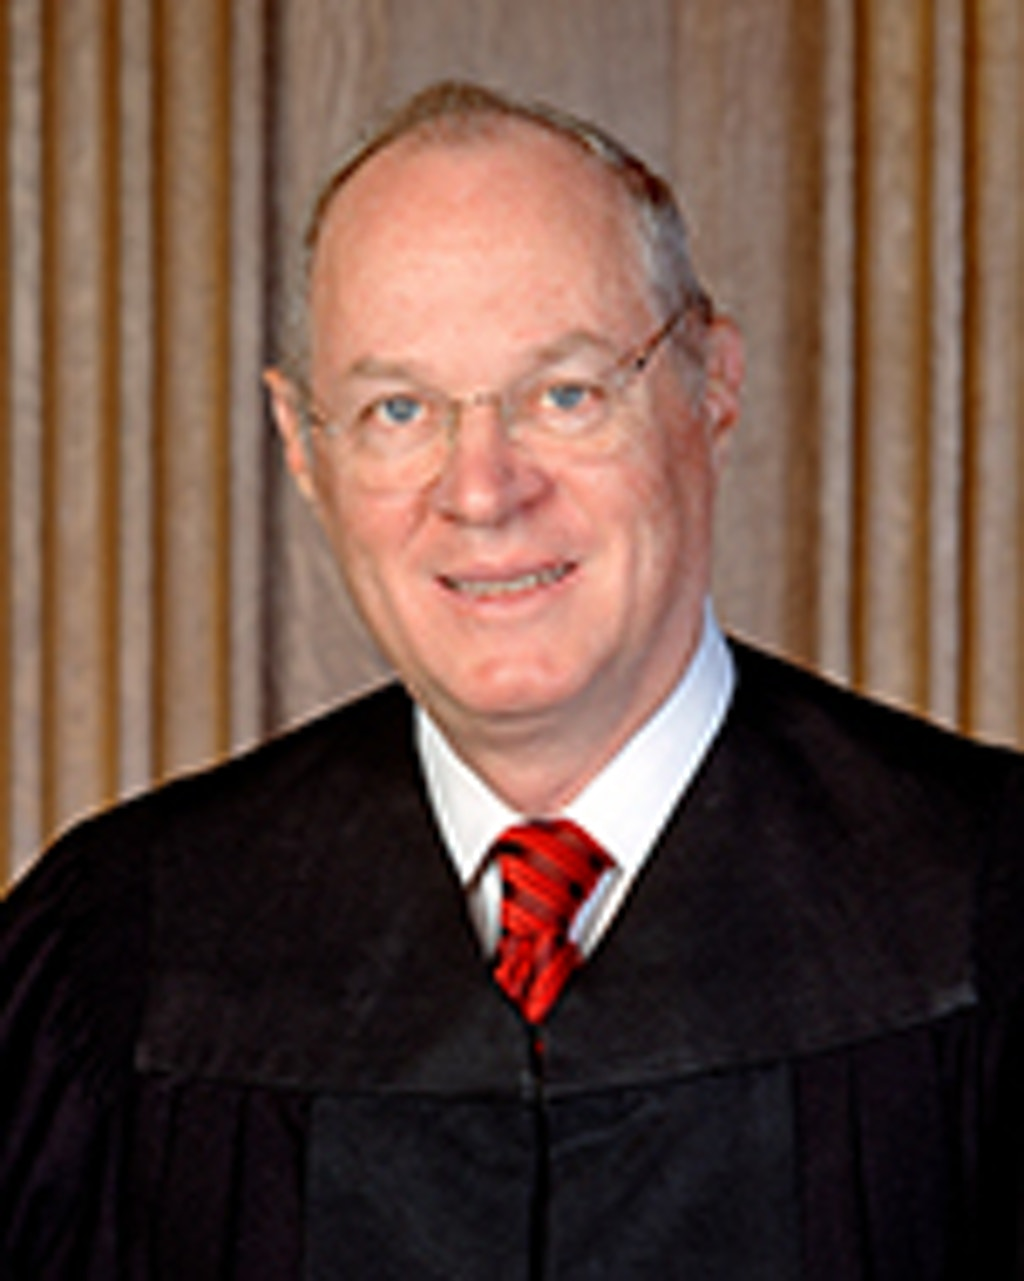 Supreme Court Justice Anthony Kennedy, Author of Key Death-Penalty Decisions, Retires